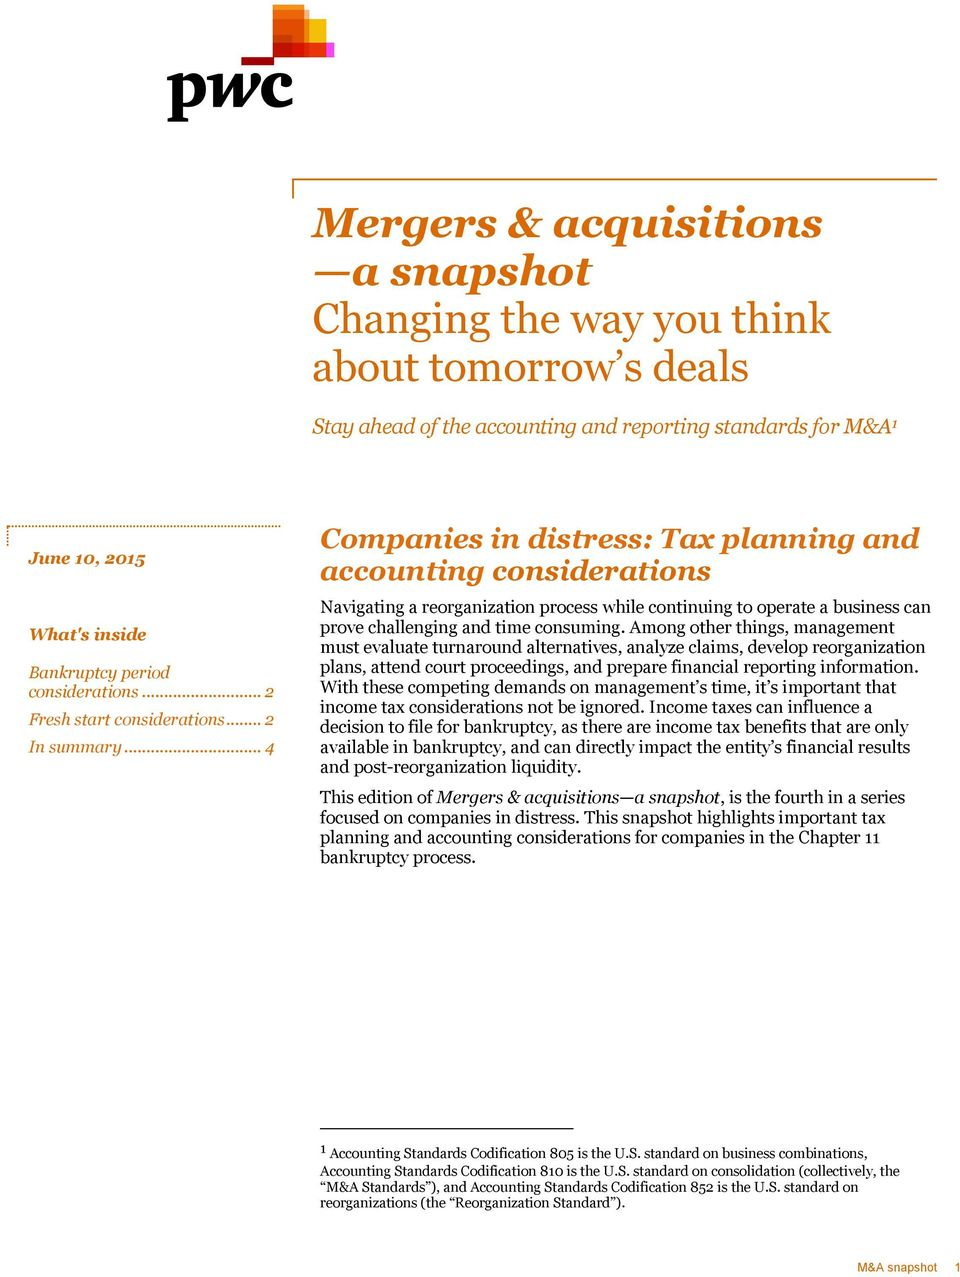 Mergers & acquisitions a snapshot Changing the way you think about